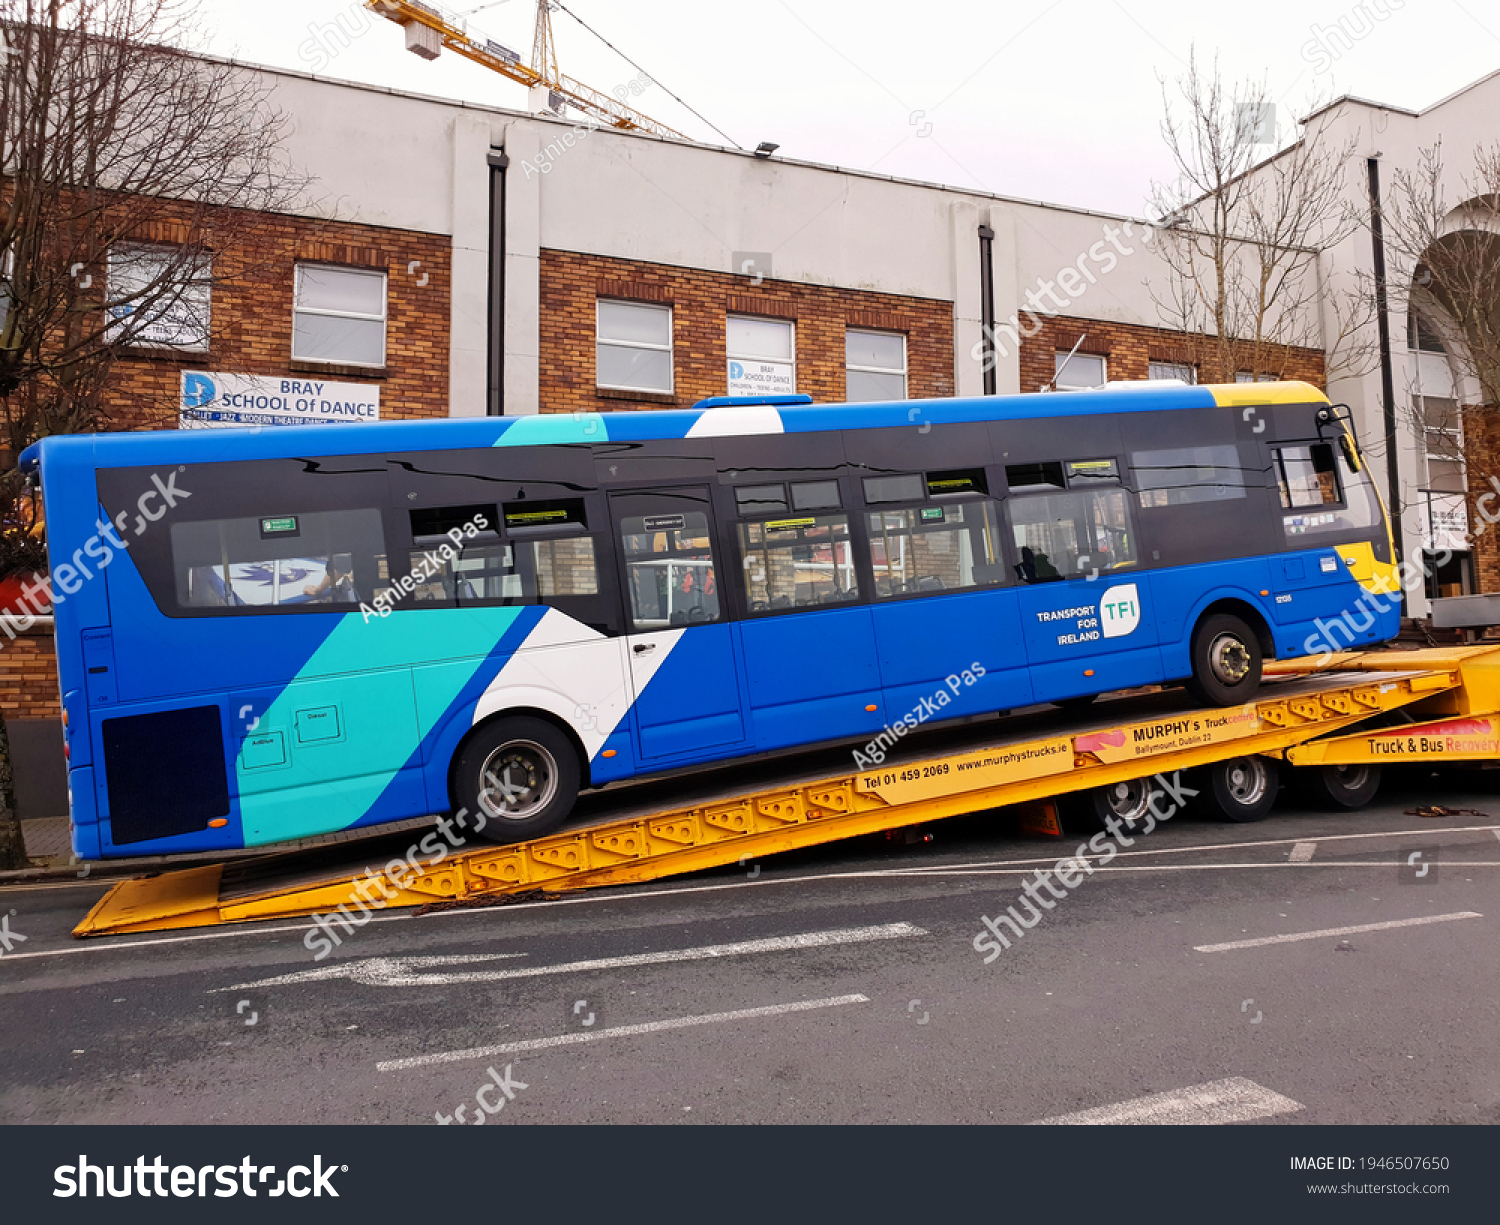 BRAY, CO. WICKLOW, IRELAND - MARCH 15, 2021: Side view of broken bus on a flatbed tow truck. Roadside service.